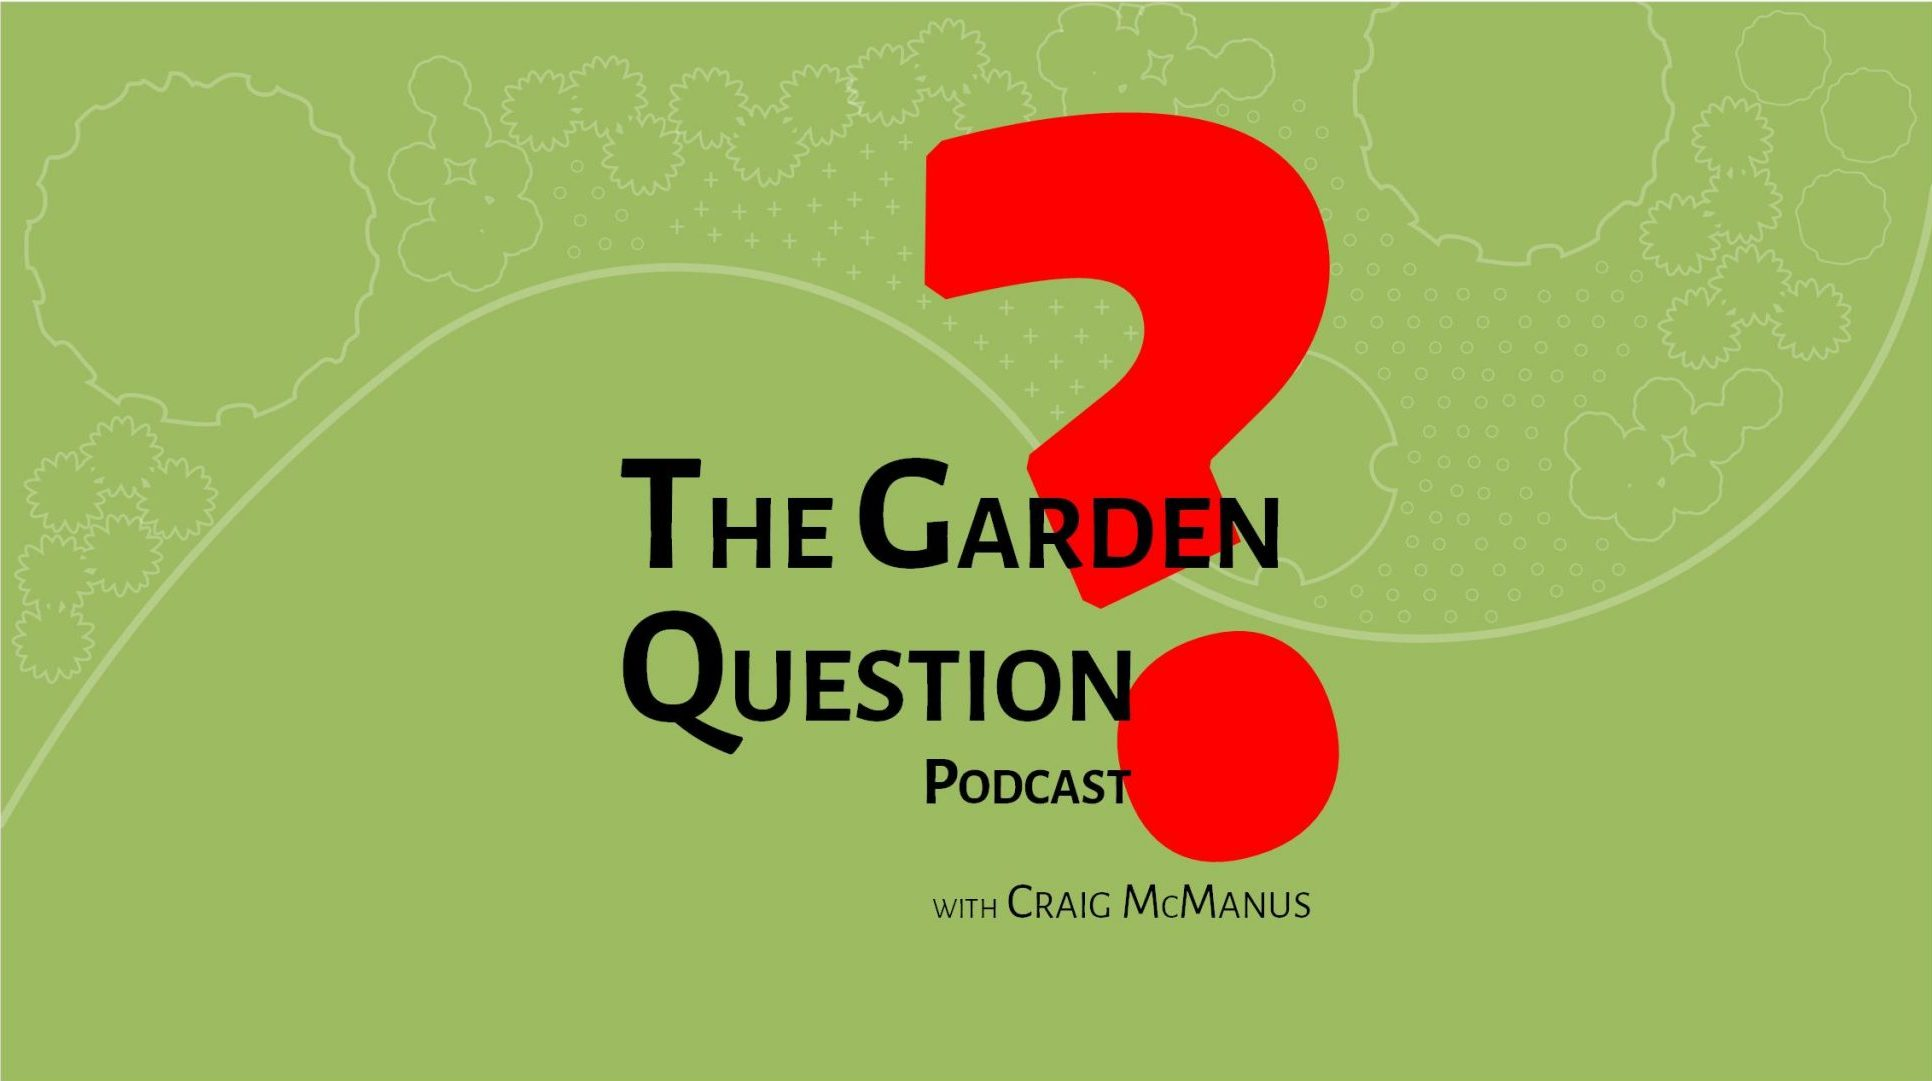 The Garden Question Podcast with Craig McManus